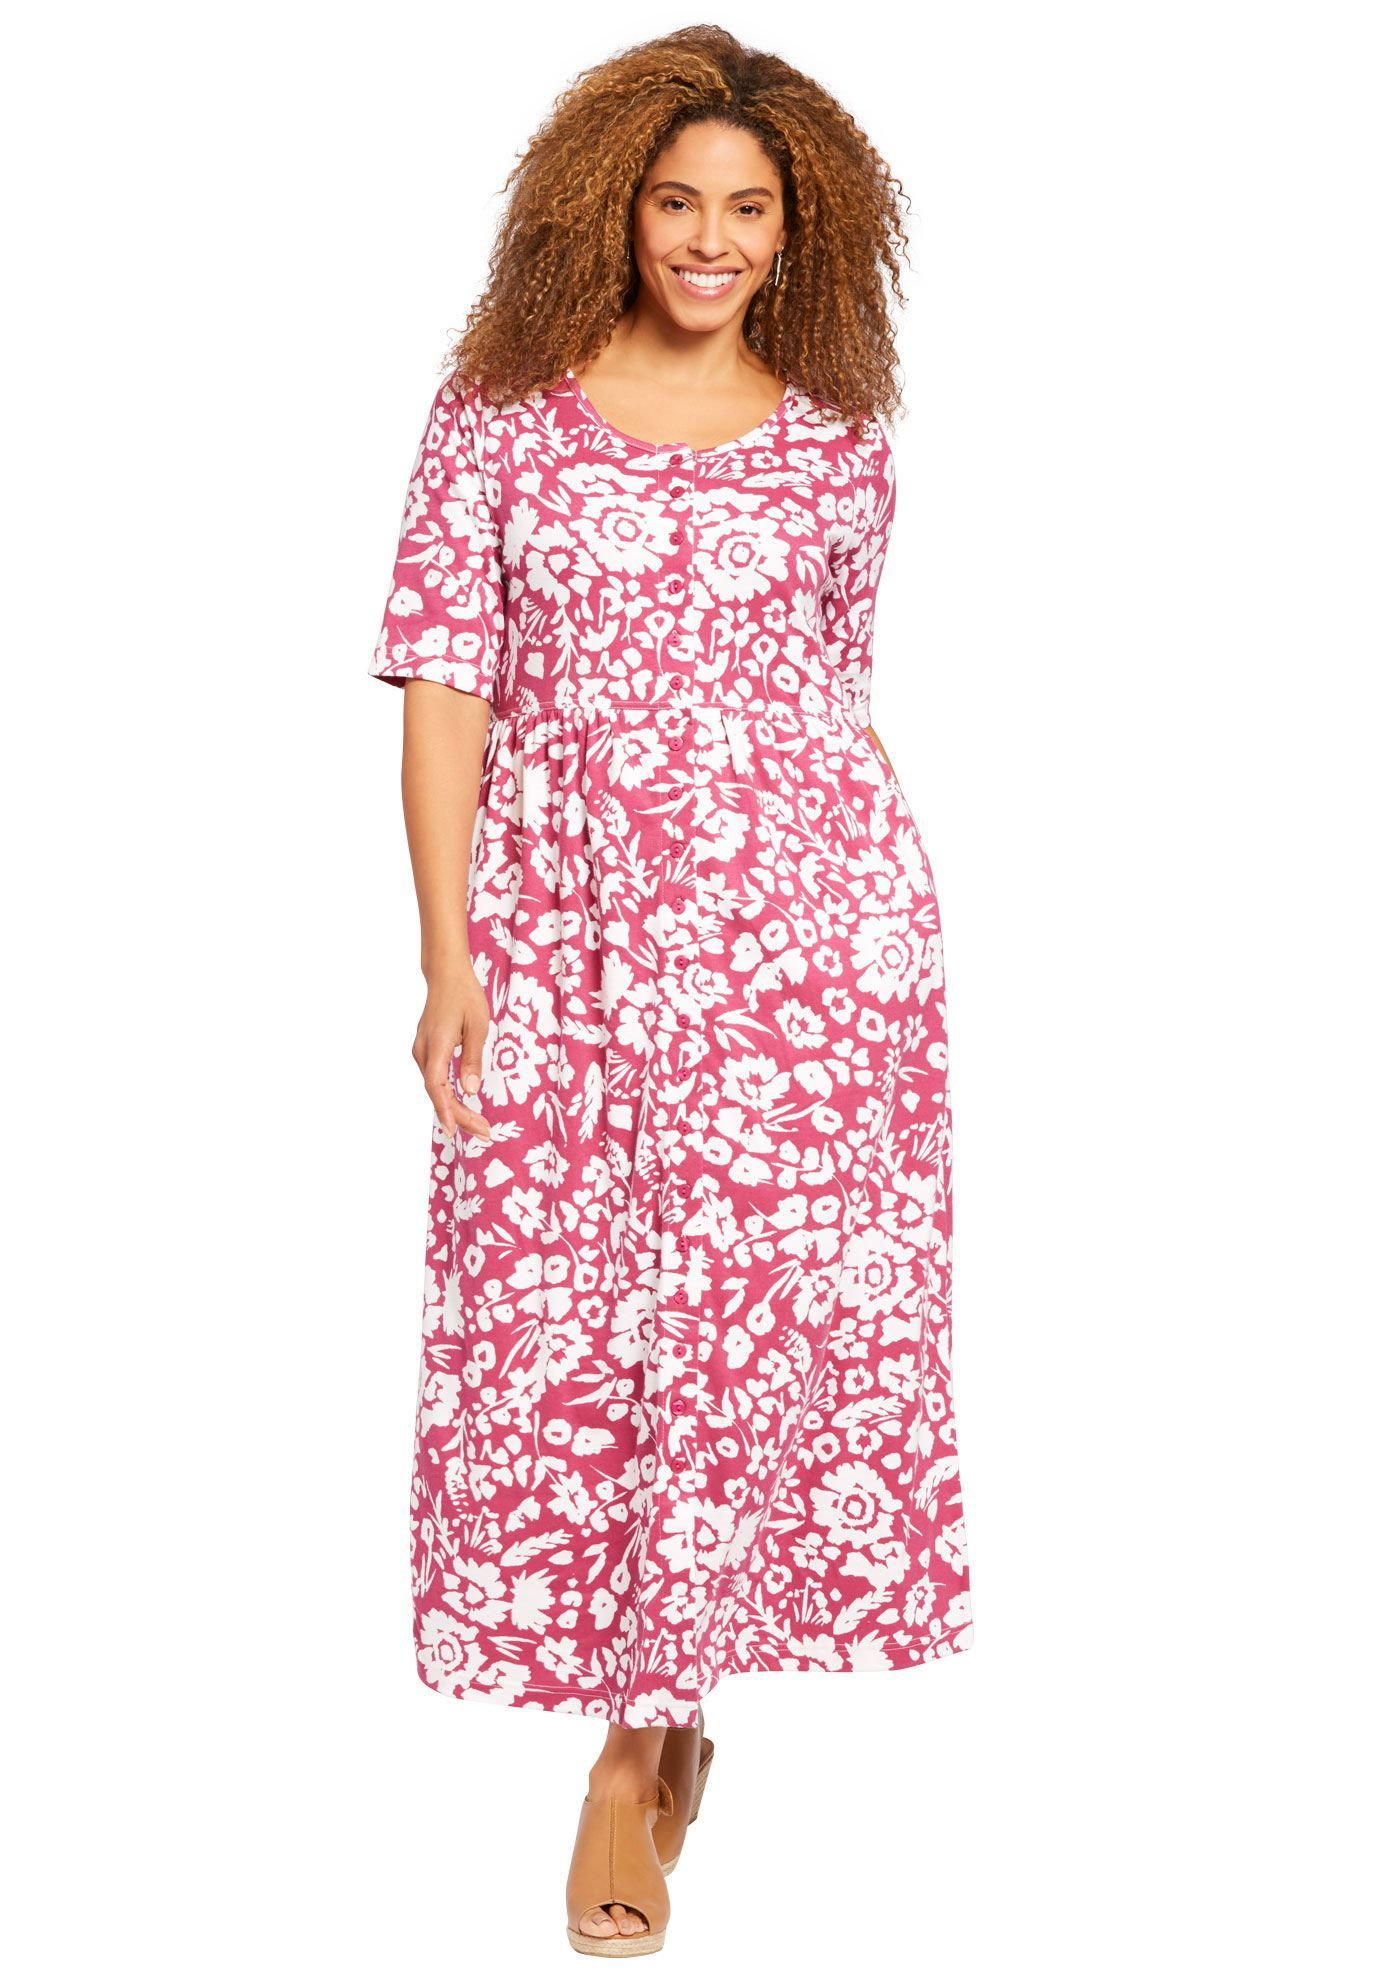 cd9af6496b9 Petite dress with button front